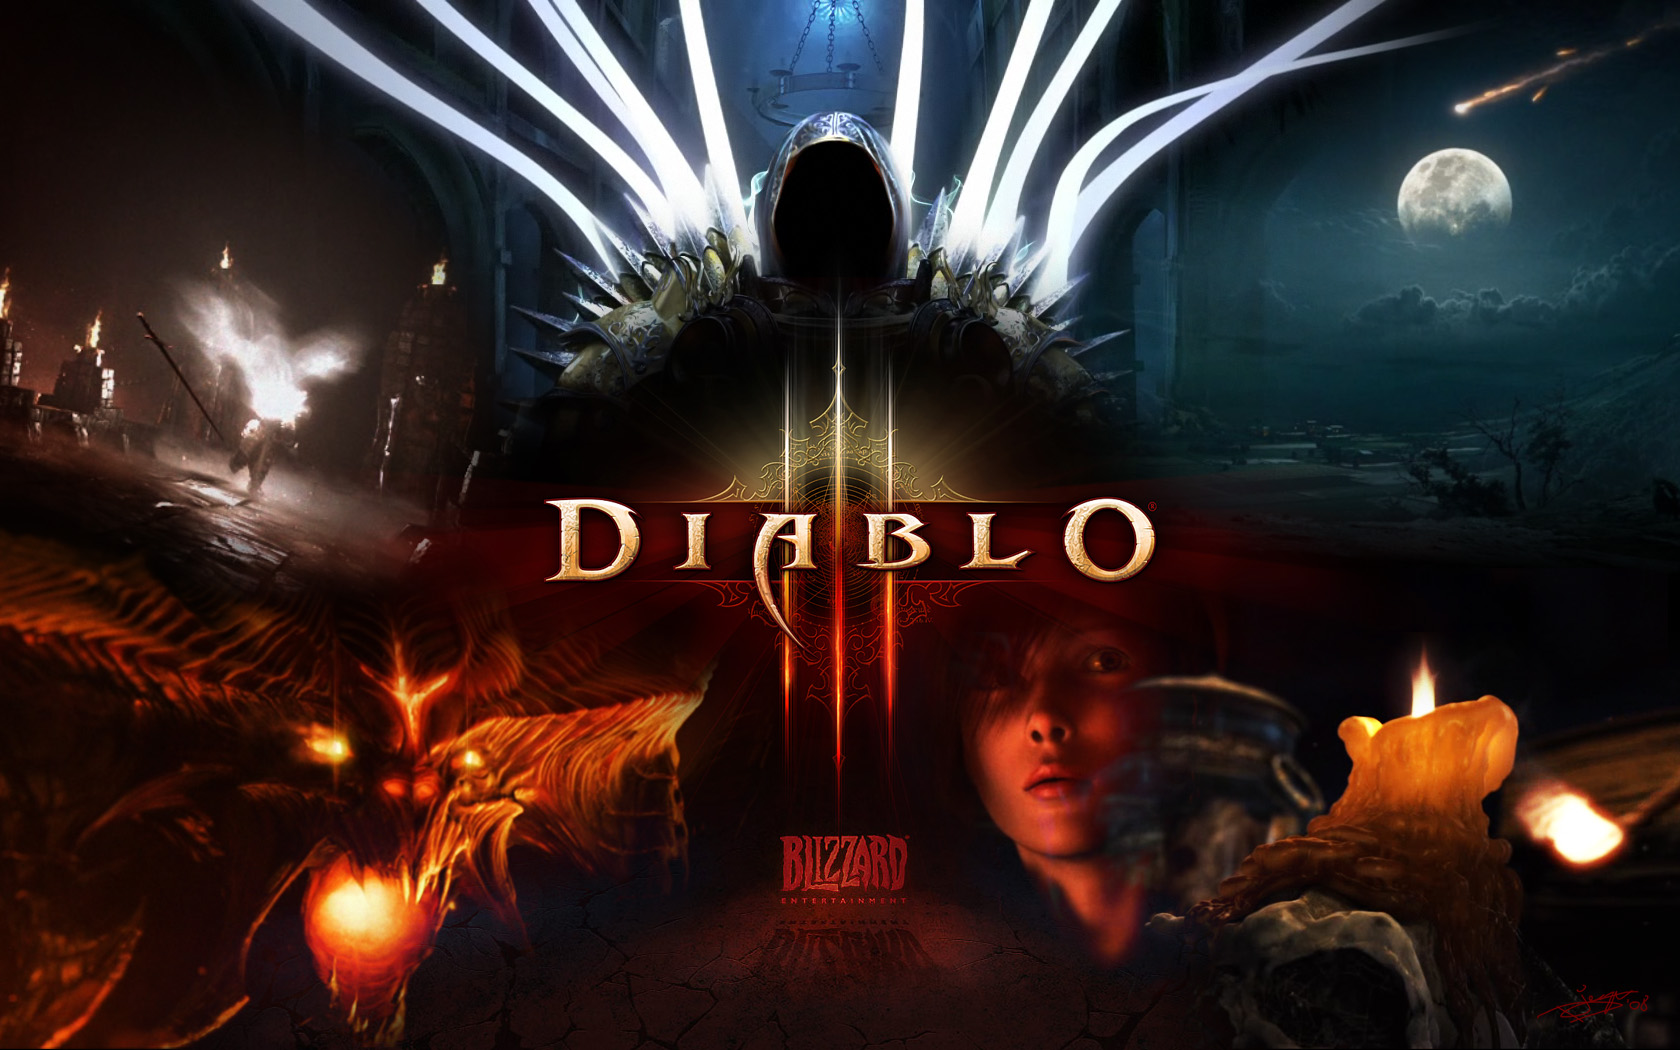 DIABLO 3 RU/EU- CD-KEY AVAILABLE (PHOTOS)